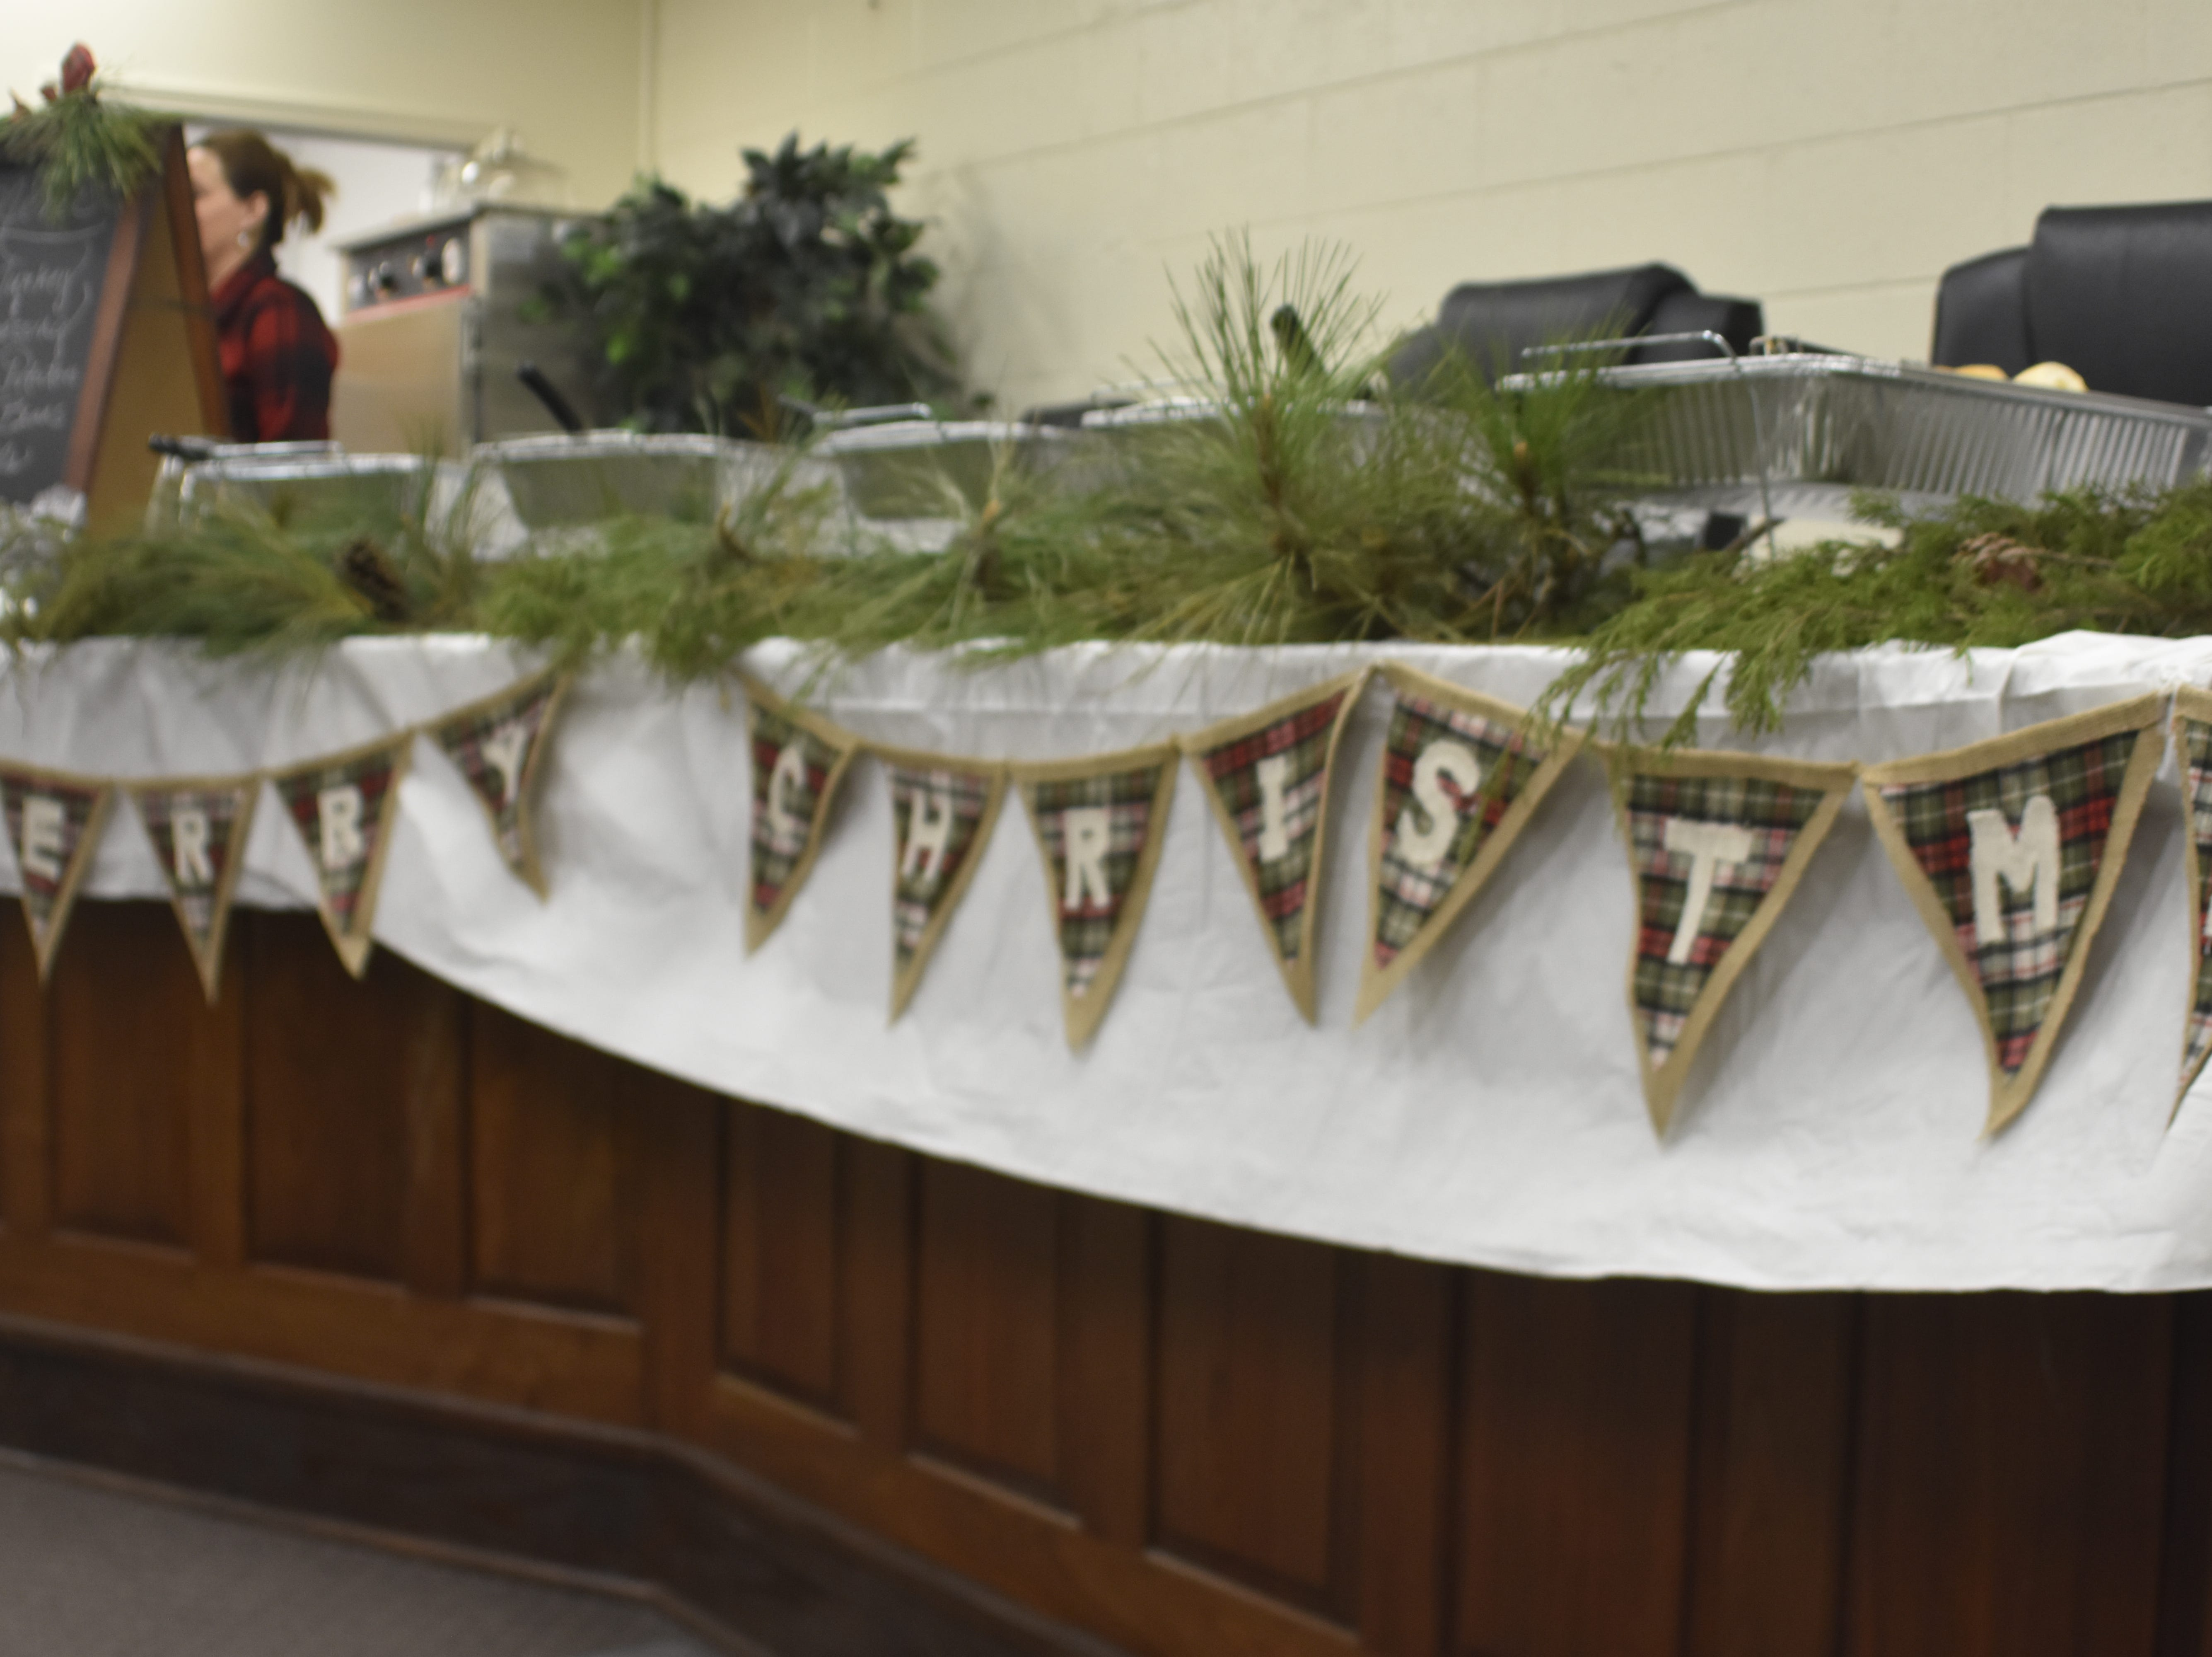 Cheatham County officials and residents gathered in the Education Annex Board room for the Cheatham County Board of Education Director's Holiday Luncheon on Friday, Dec. 7.